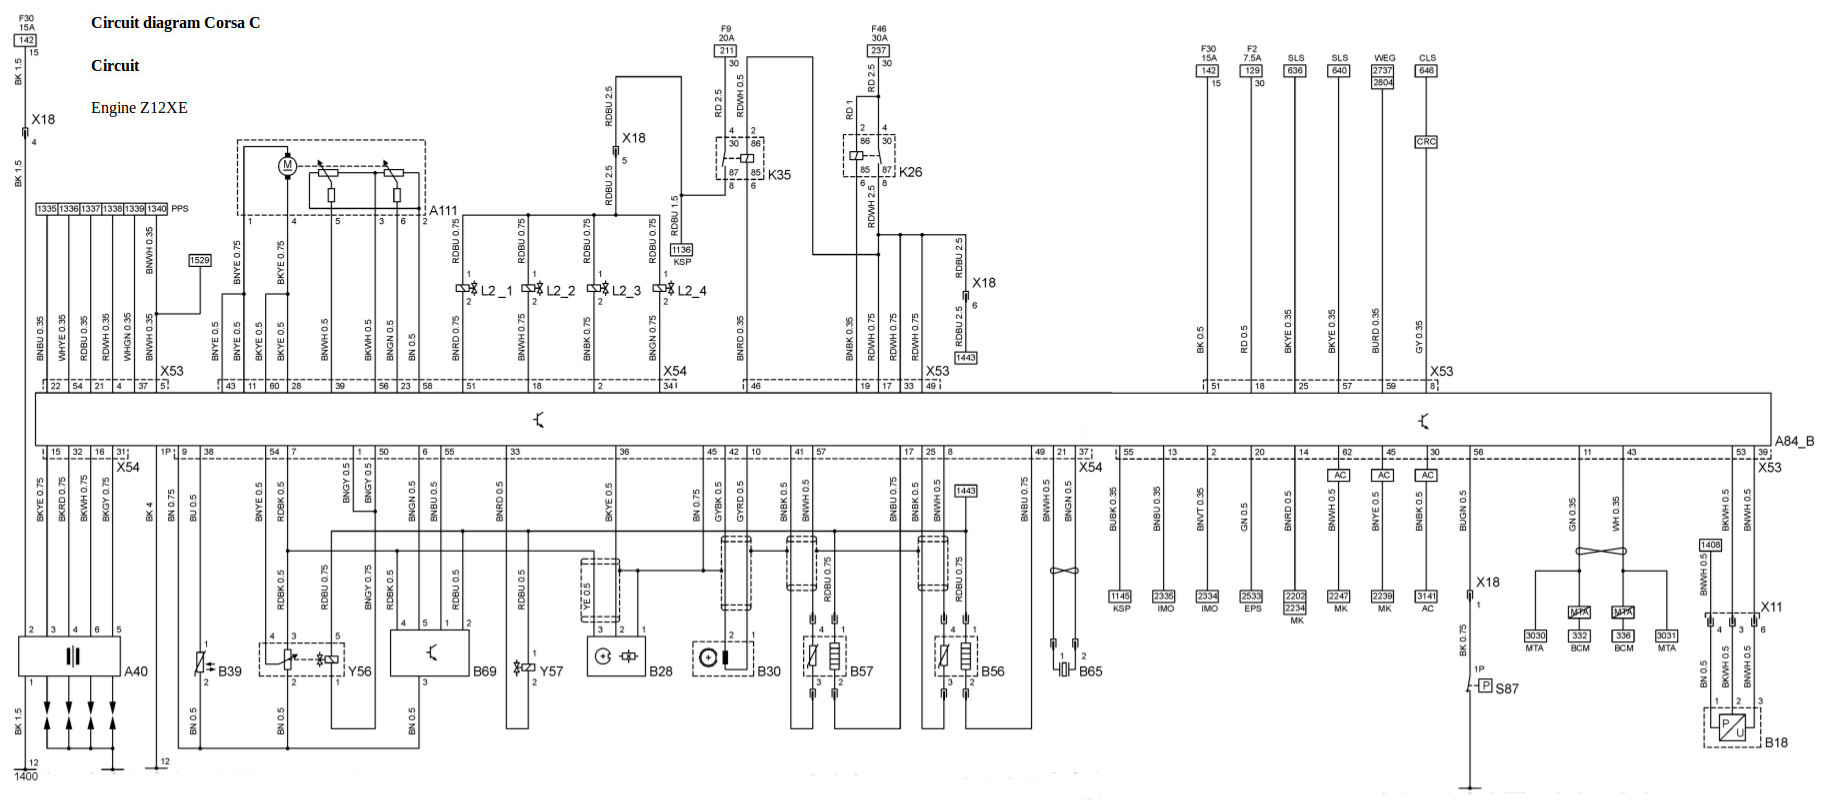 wiring diagram for opel monza online wiring diagramopel start wiring diagram wiring diagram cars opel monza [ 1823 x 804 Pixel ]